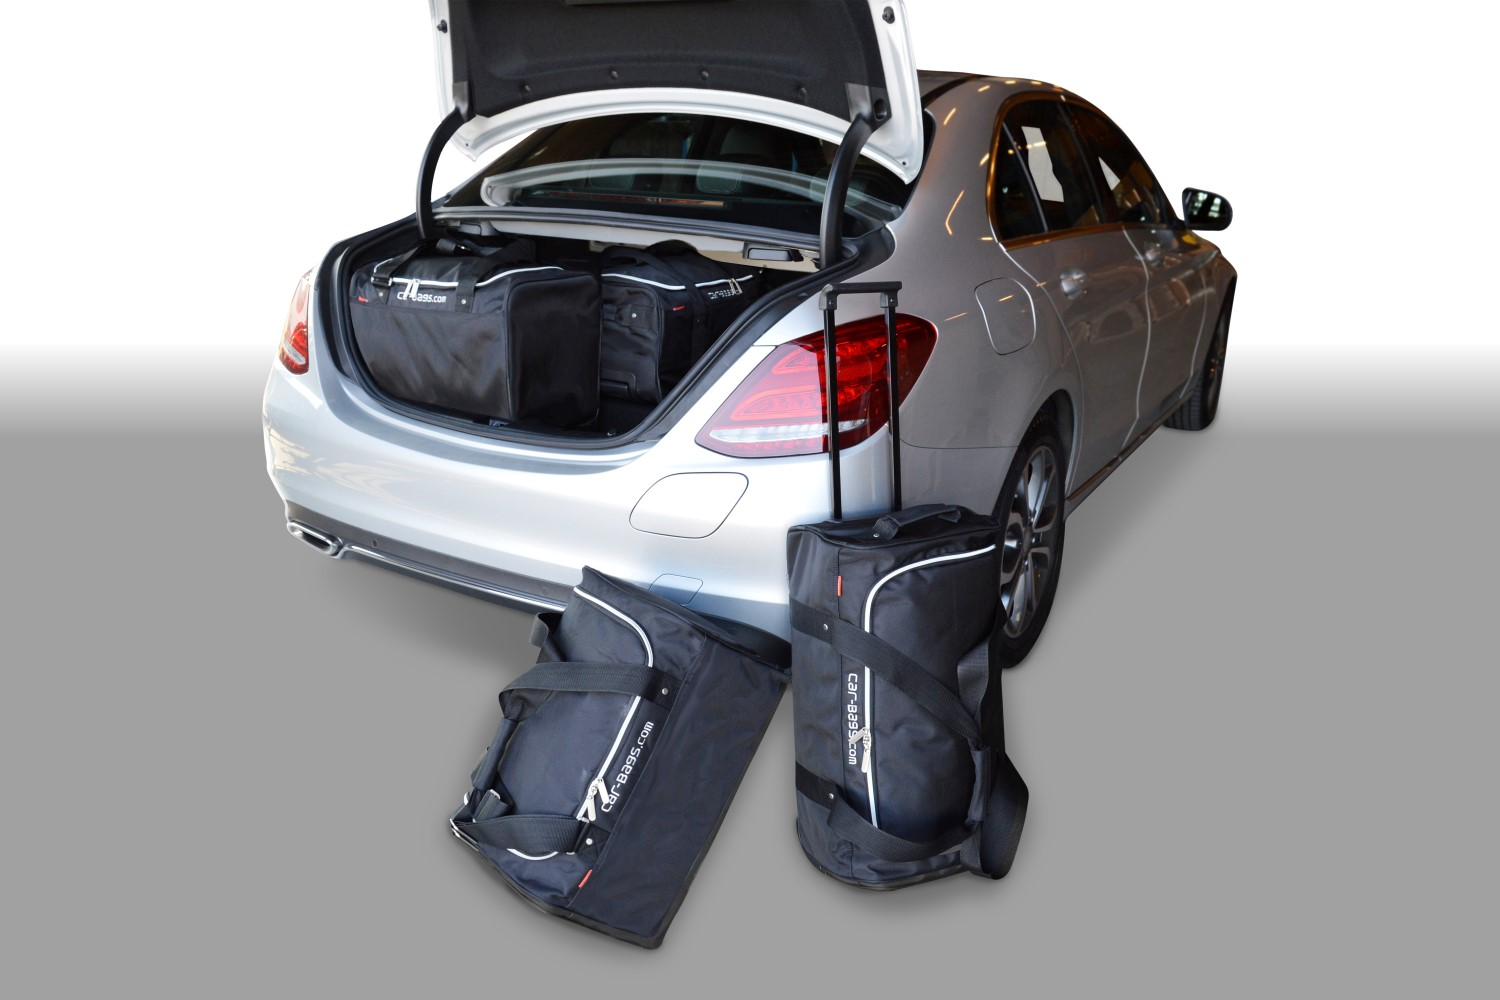 Mercedes C Klasse Pih W205 Car Travel Bags Car Parts Expert